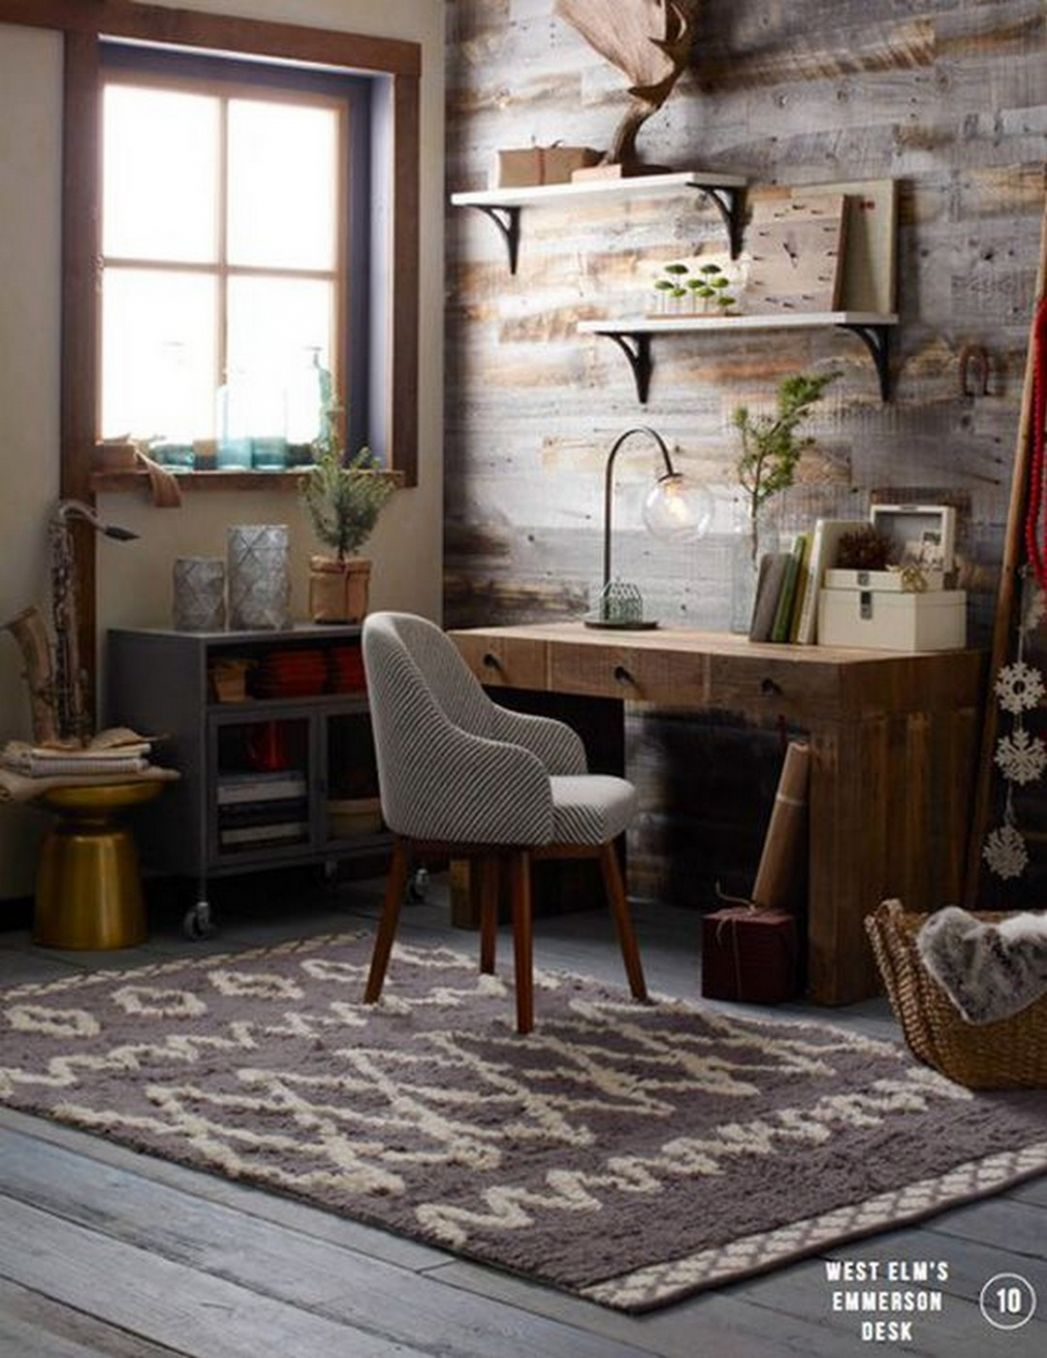 Modify Your Ordinary Home Office with These Great Rustic Office ..